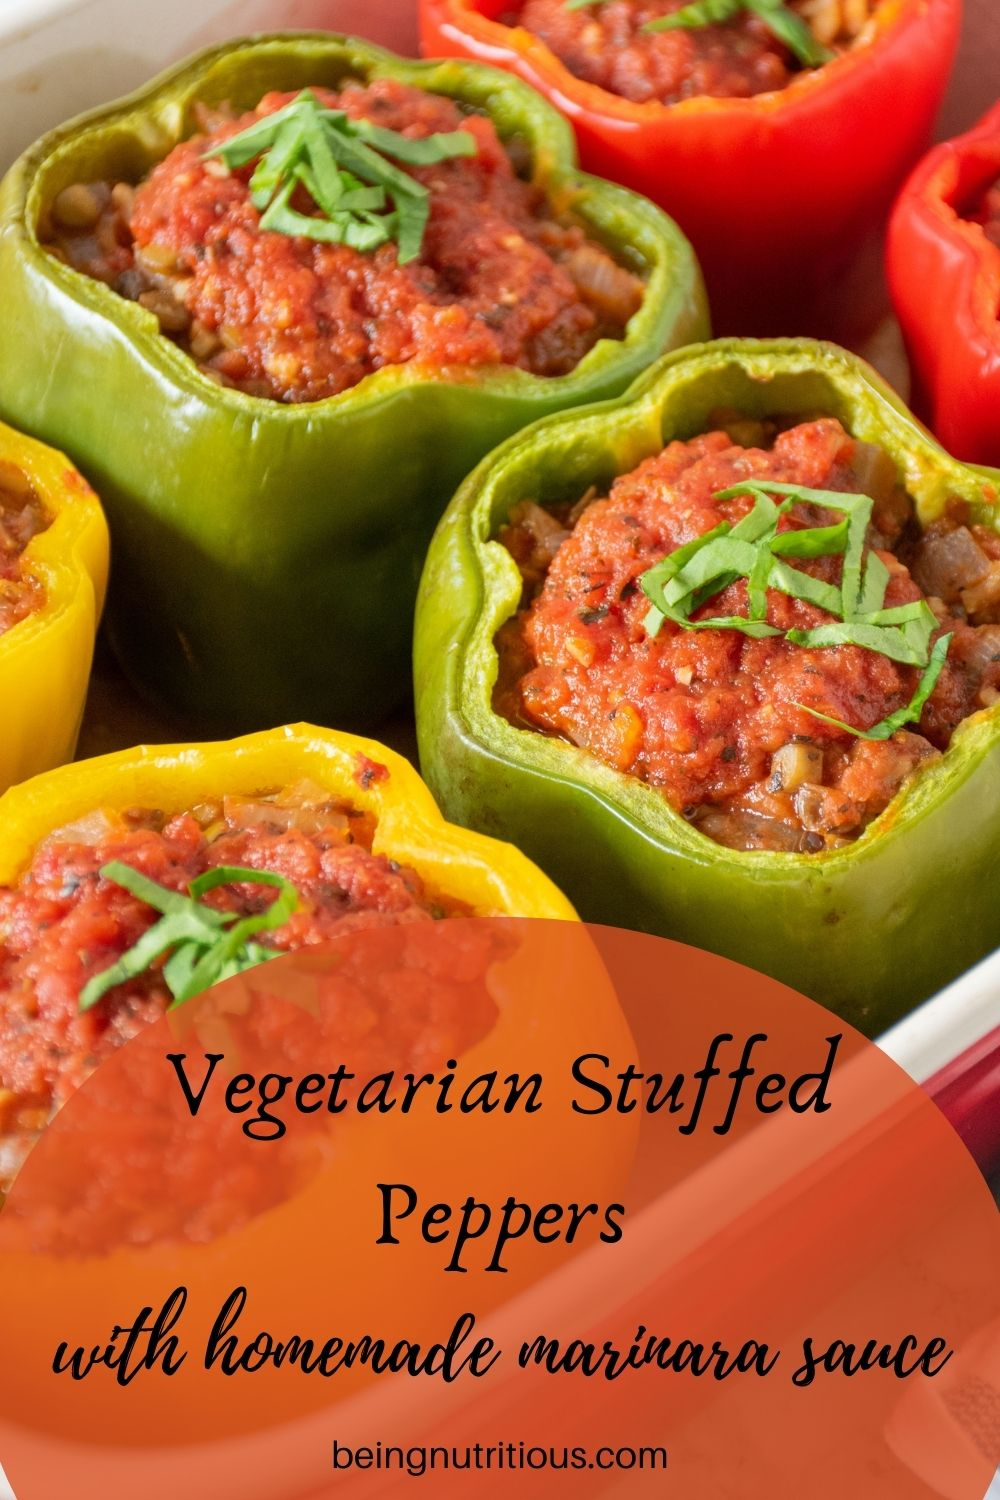 Close up of stuffed peppers in a baking pan. Text overlay: vegetarian stuffed peppers with homemade marinara sauce.